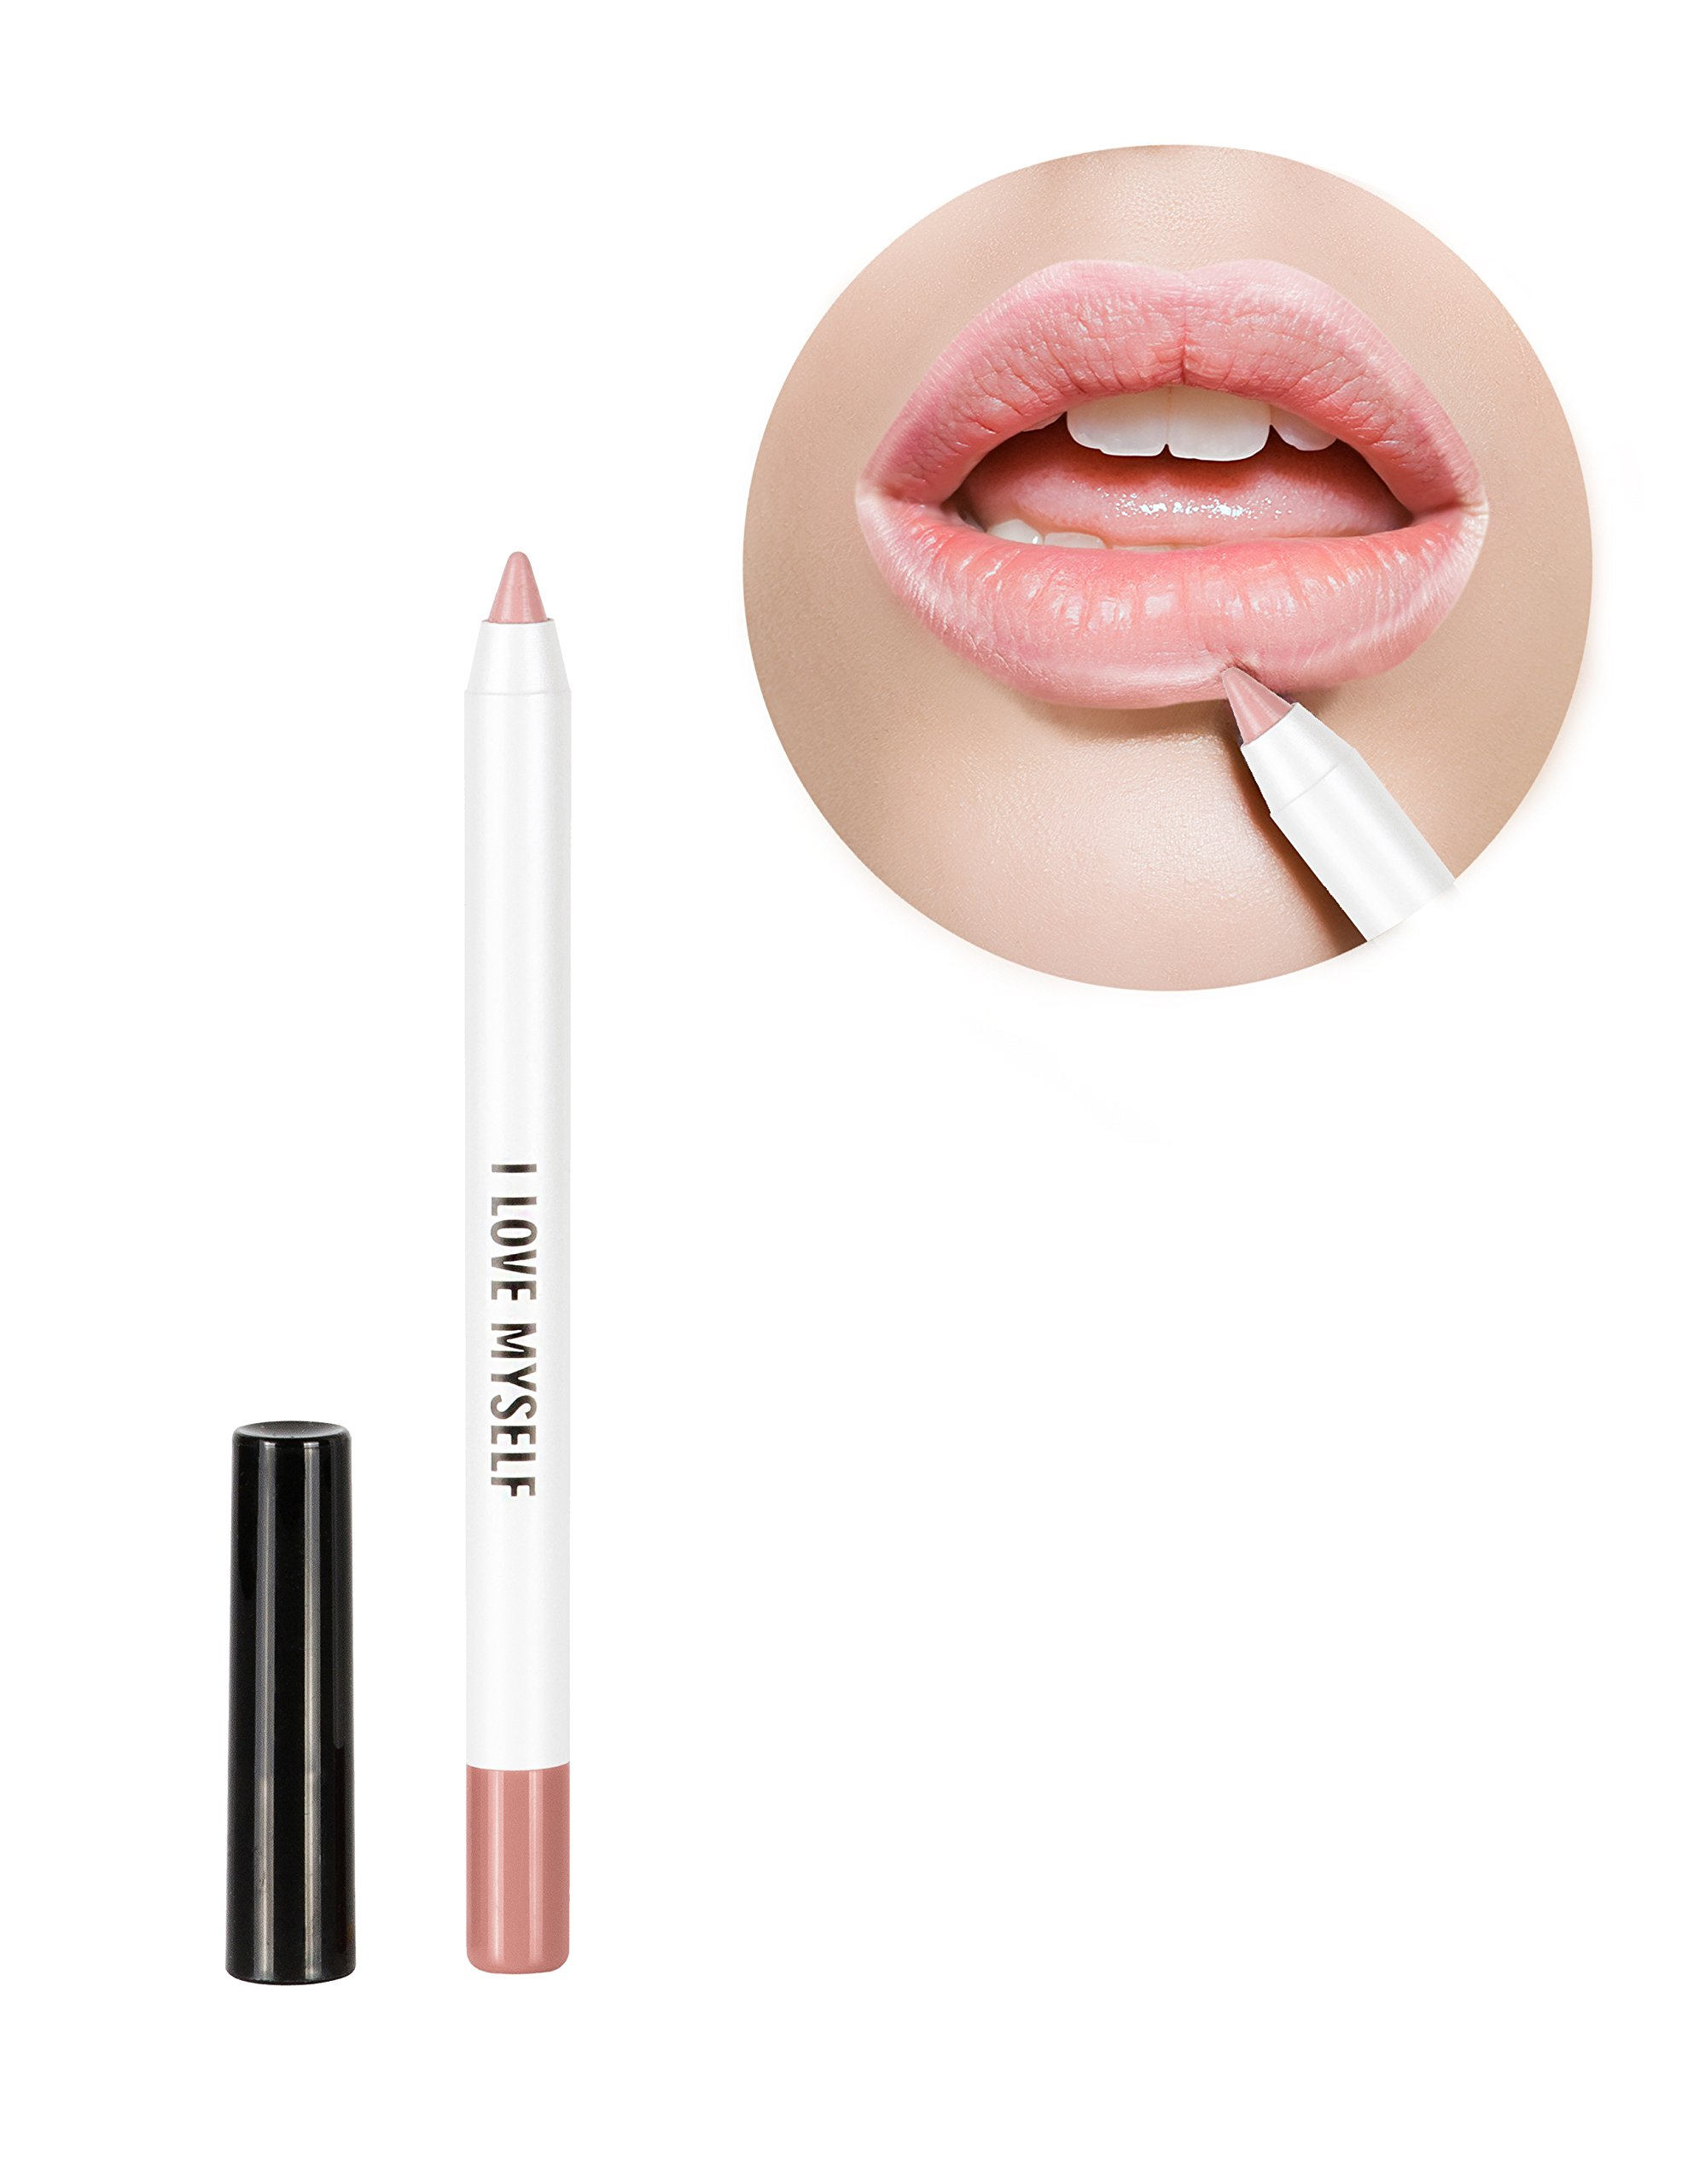 RealHer Defining, Anti-Feathering, No Bleeding, Nude Lip Liner - ''I Love Myself''